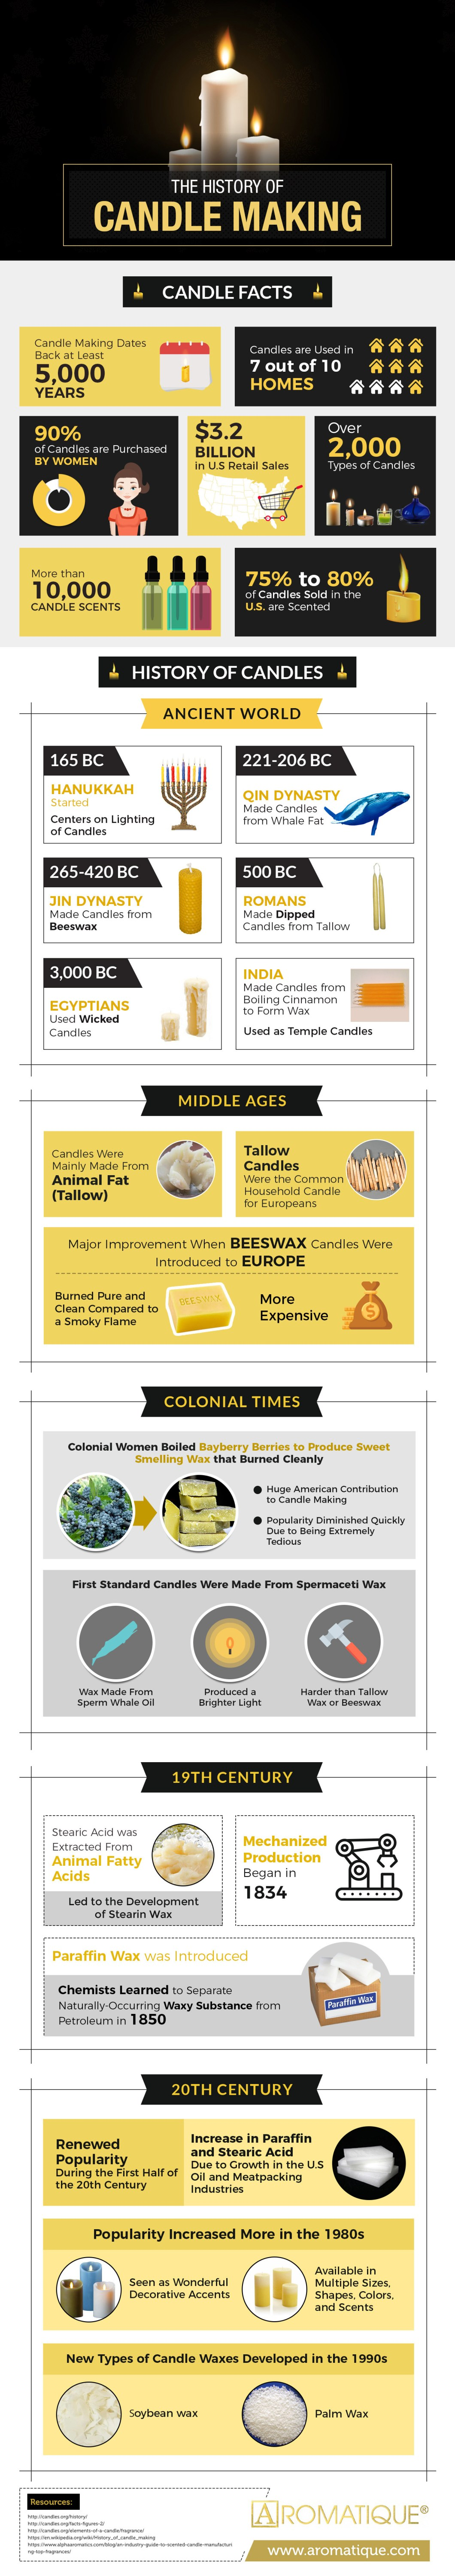 How Candles Were Made in Ancient Times - Infographic